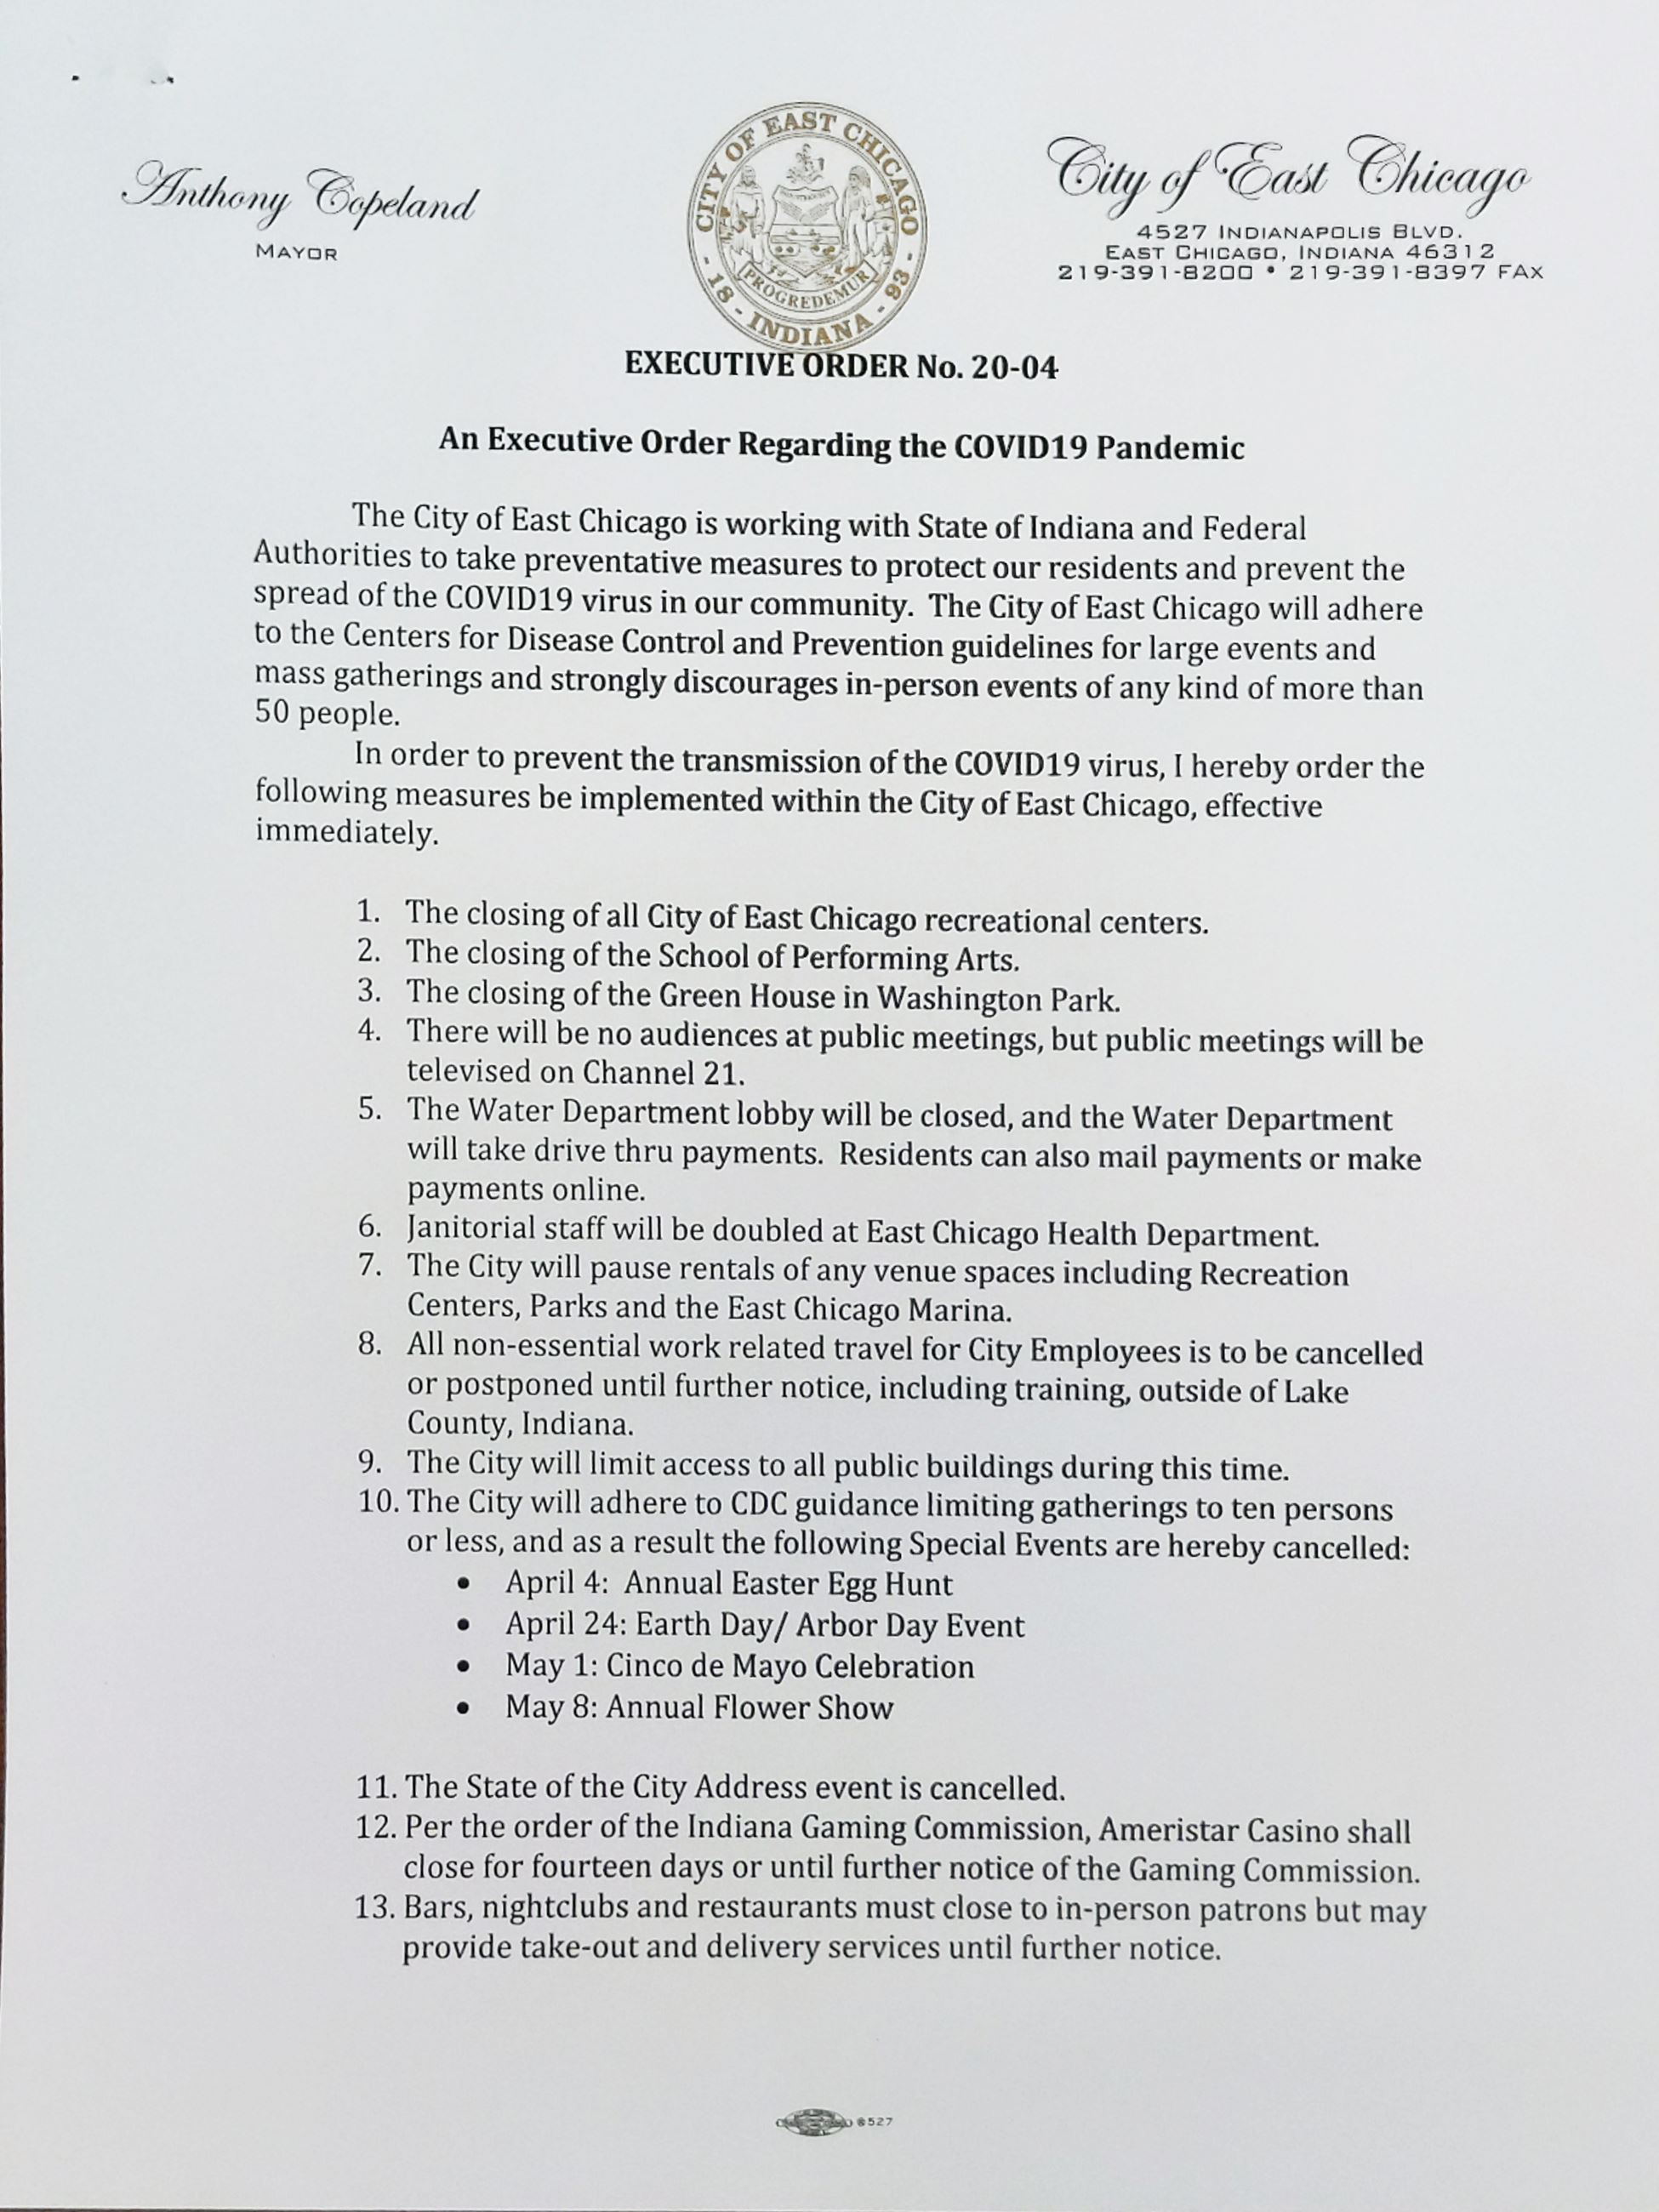 EXECUTIVE ORDER PAGE 1